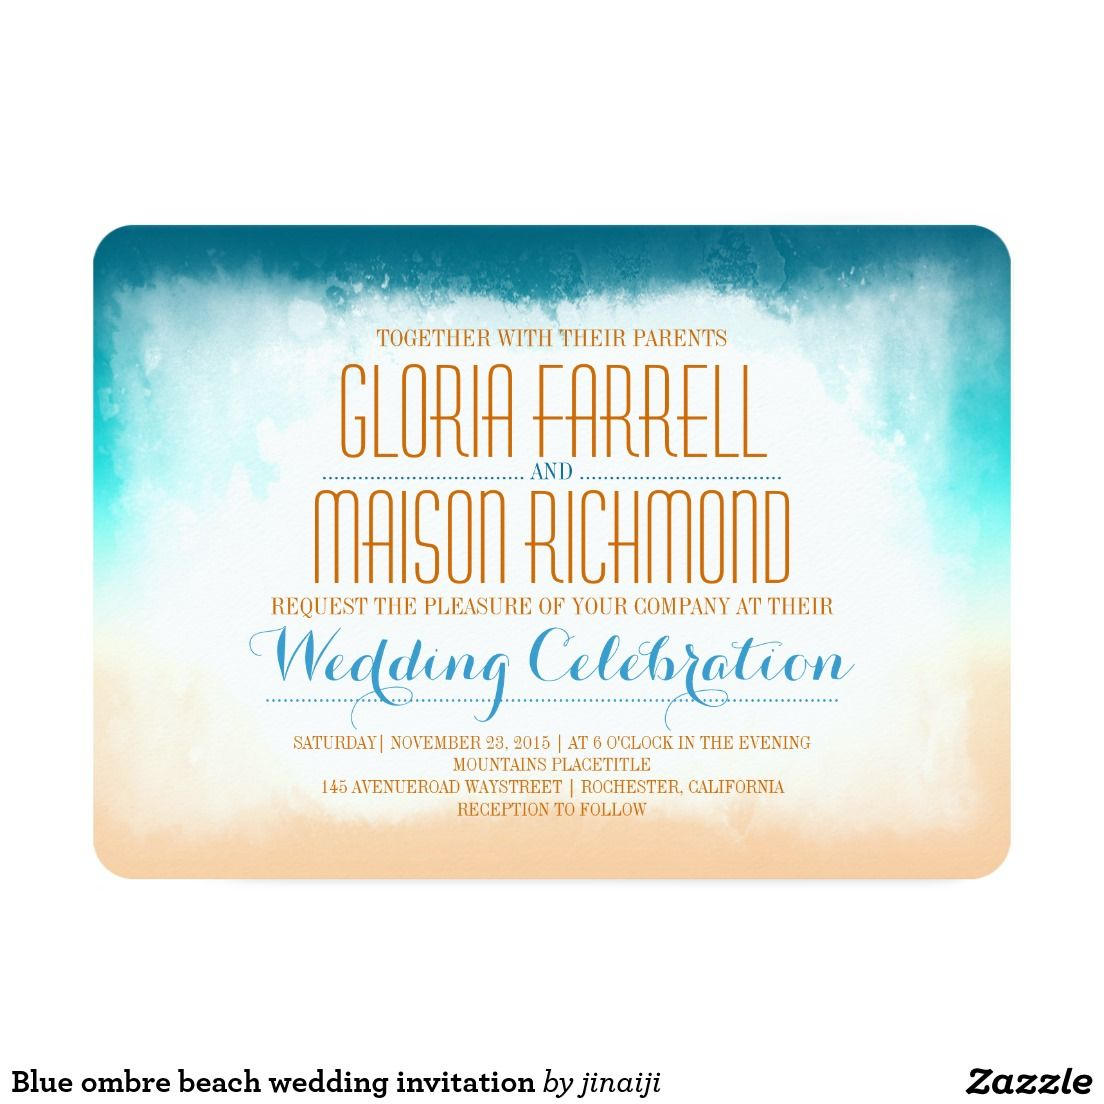 Blue ombre beach wedding invitation